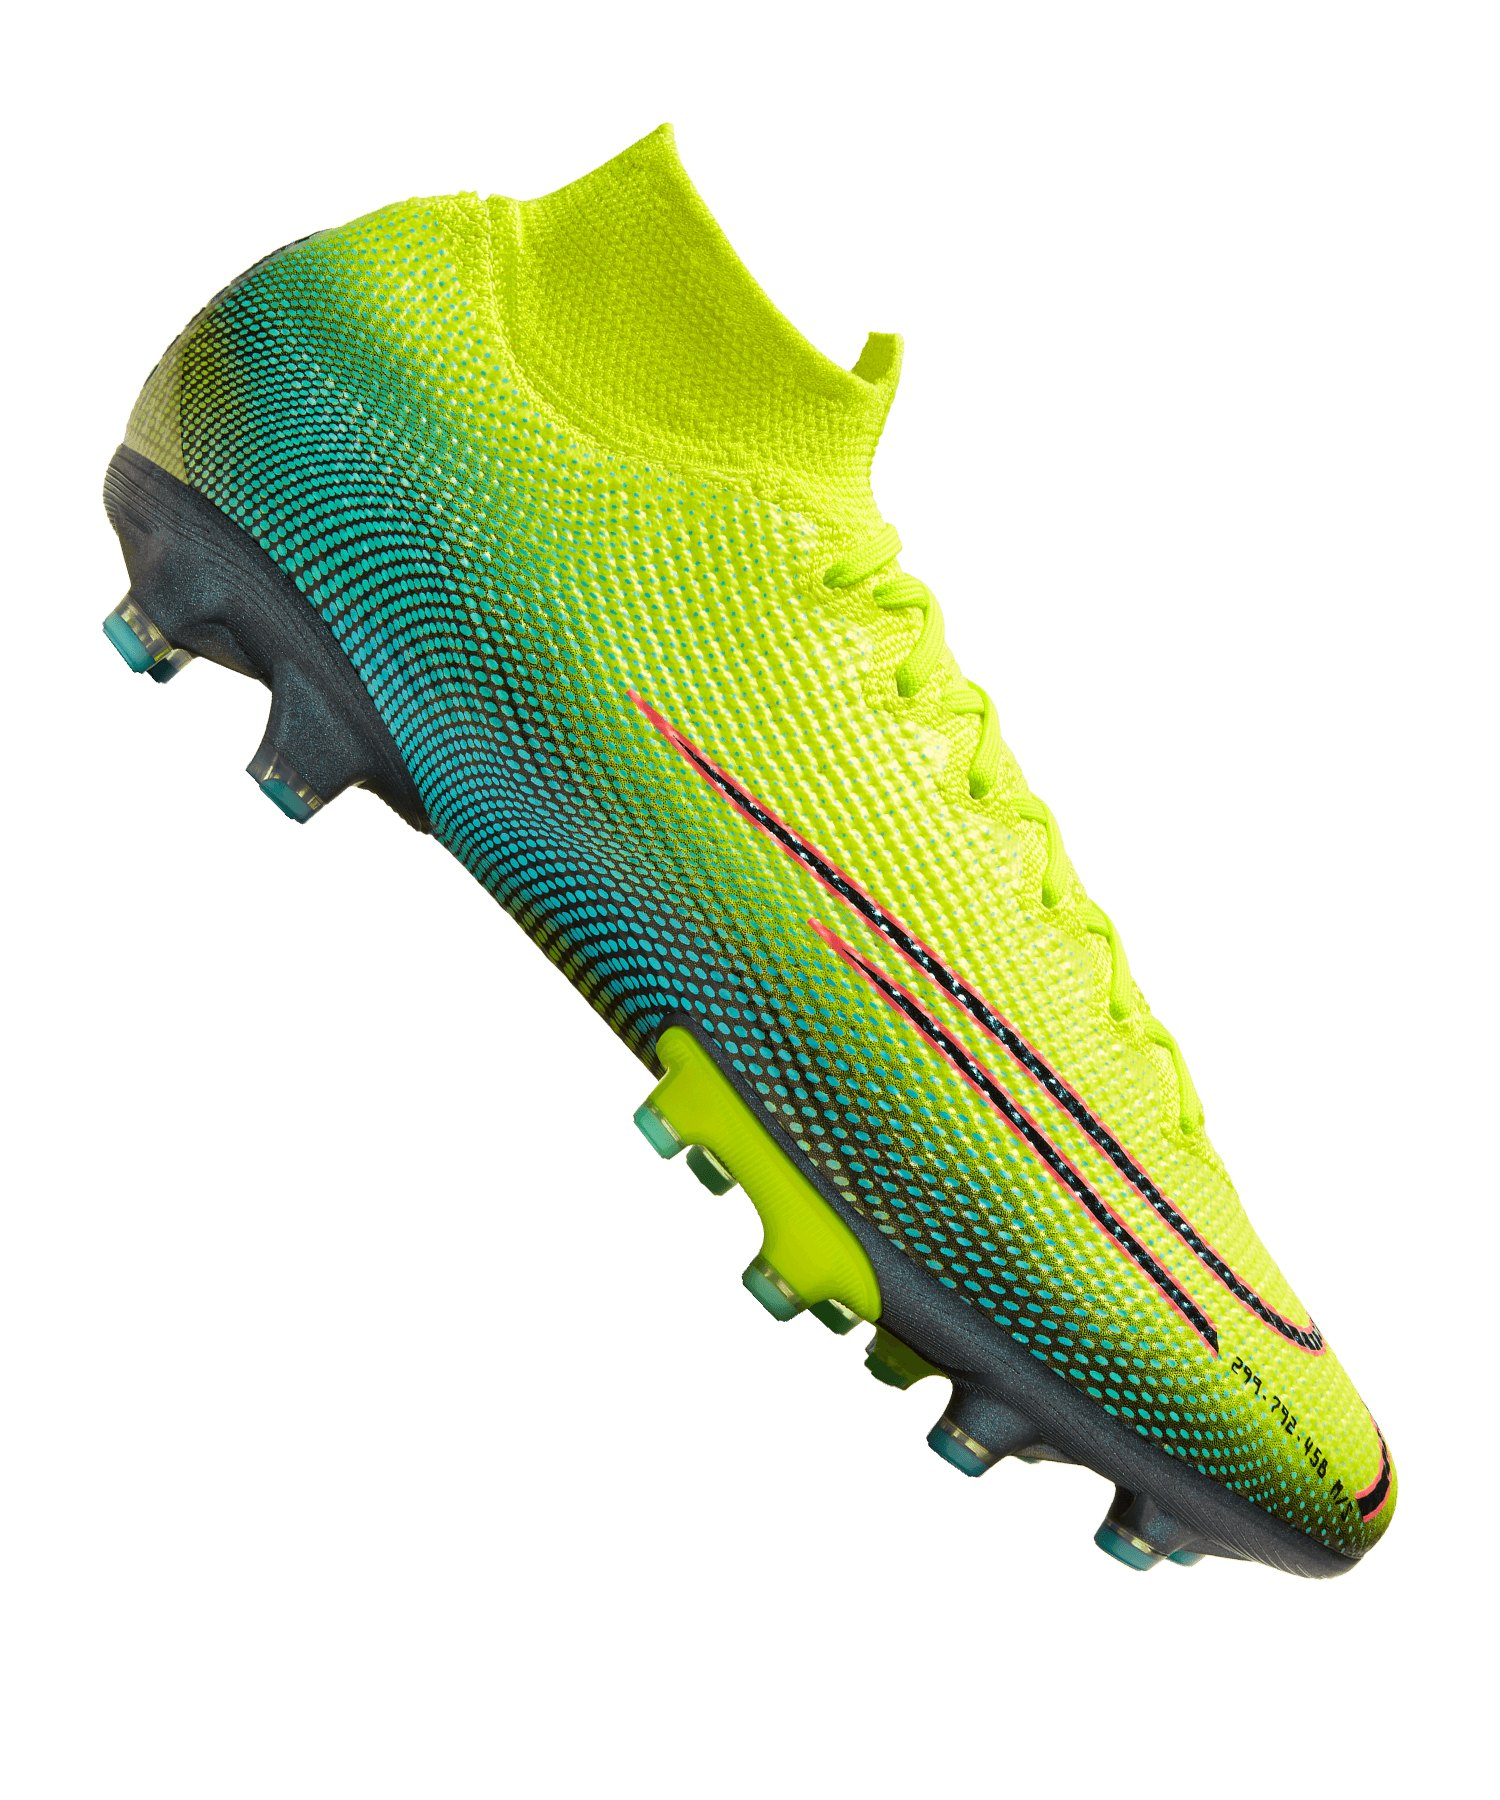 Nike Mercurial Superfly VII Dreamspeed Elite AG-Pro Gelb F703 - gelb